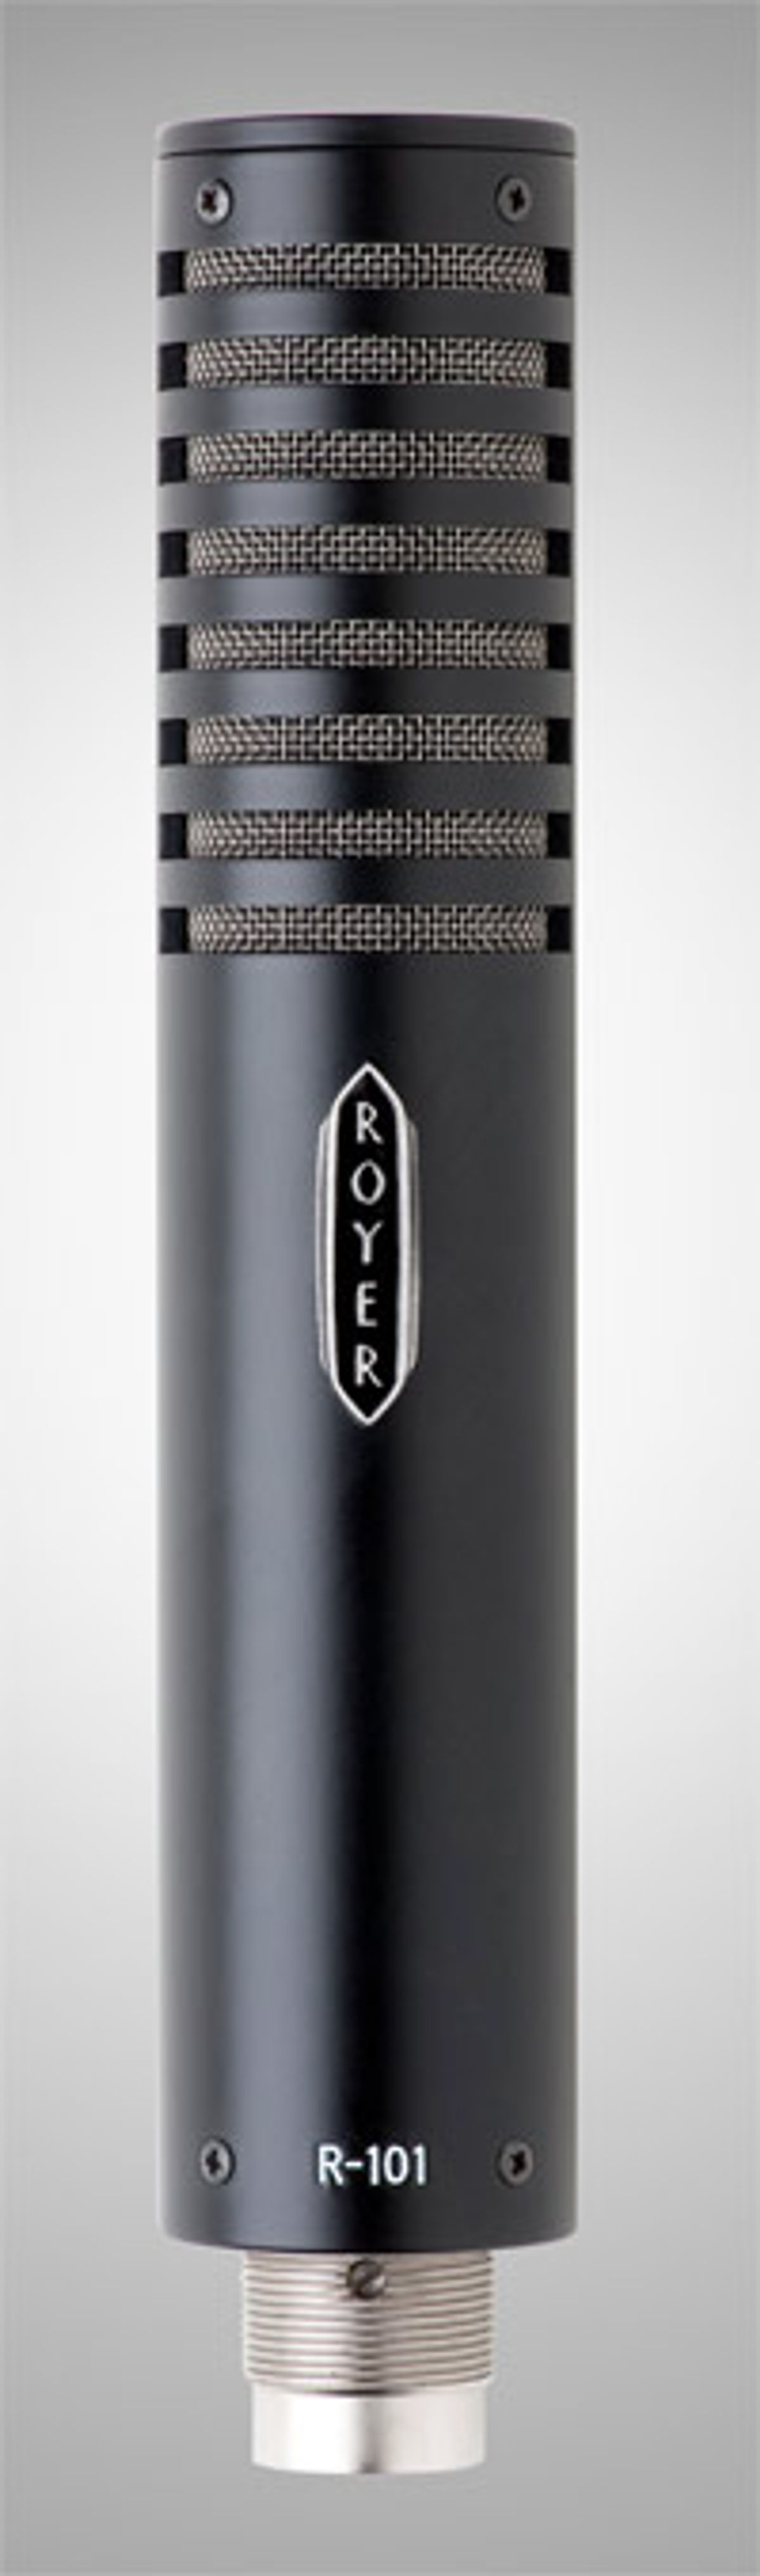 Royer Labs Debuts R-101 Ribbon Microphone